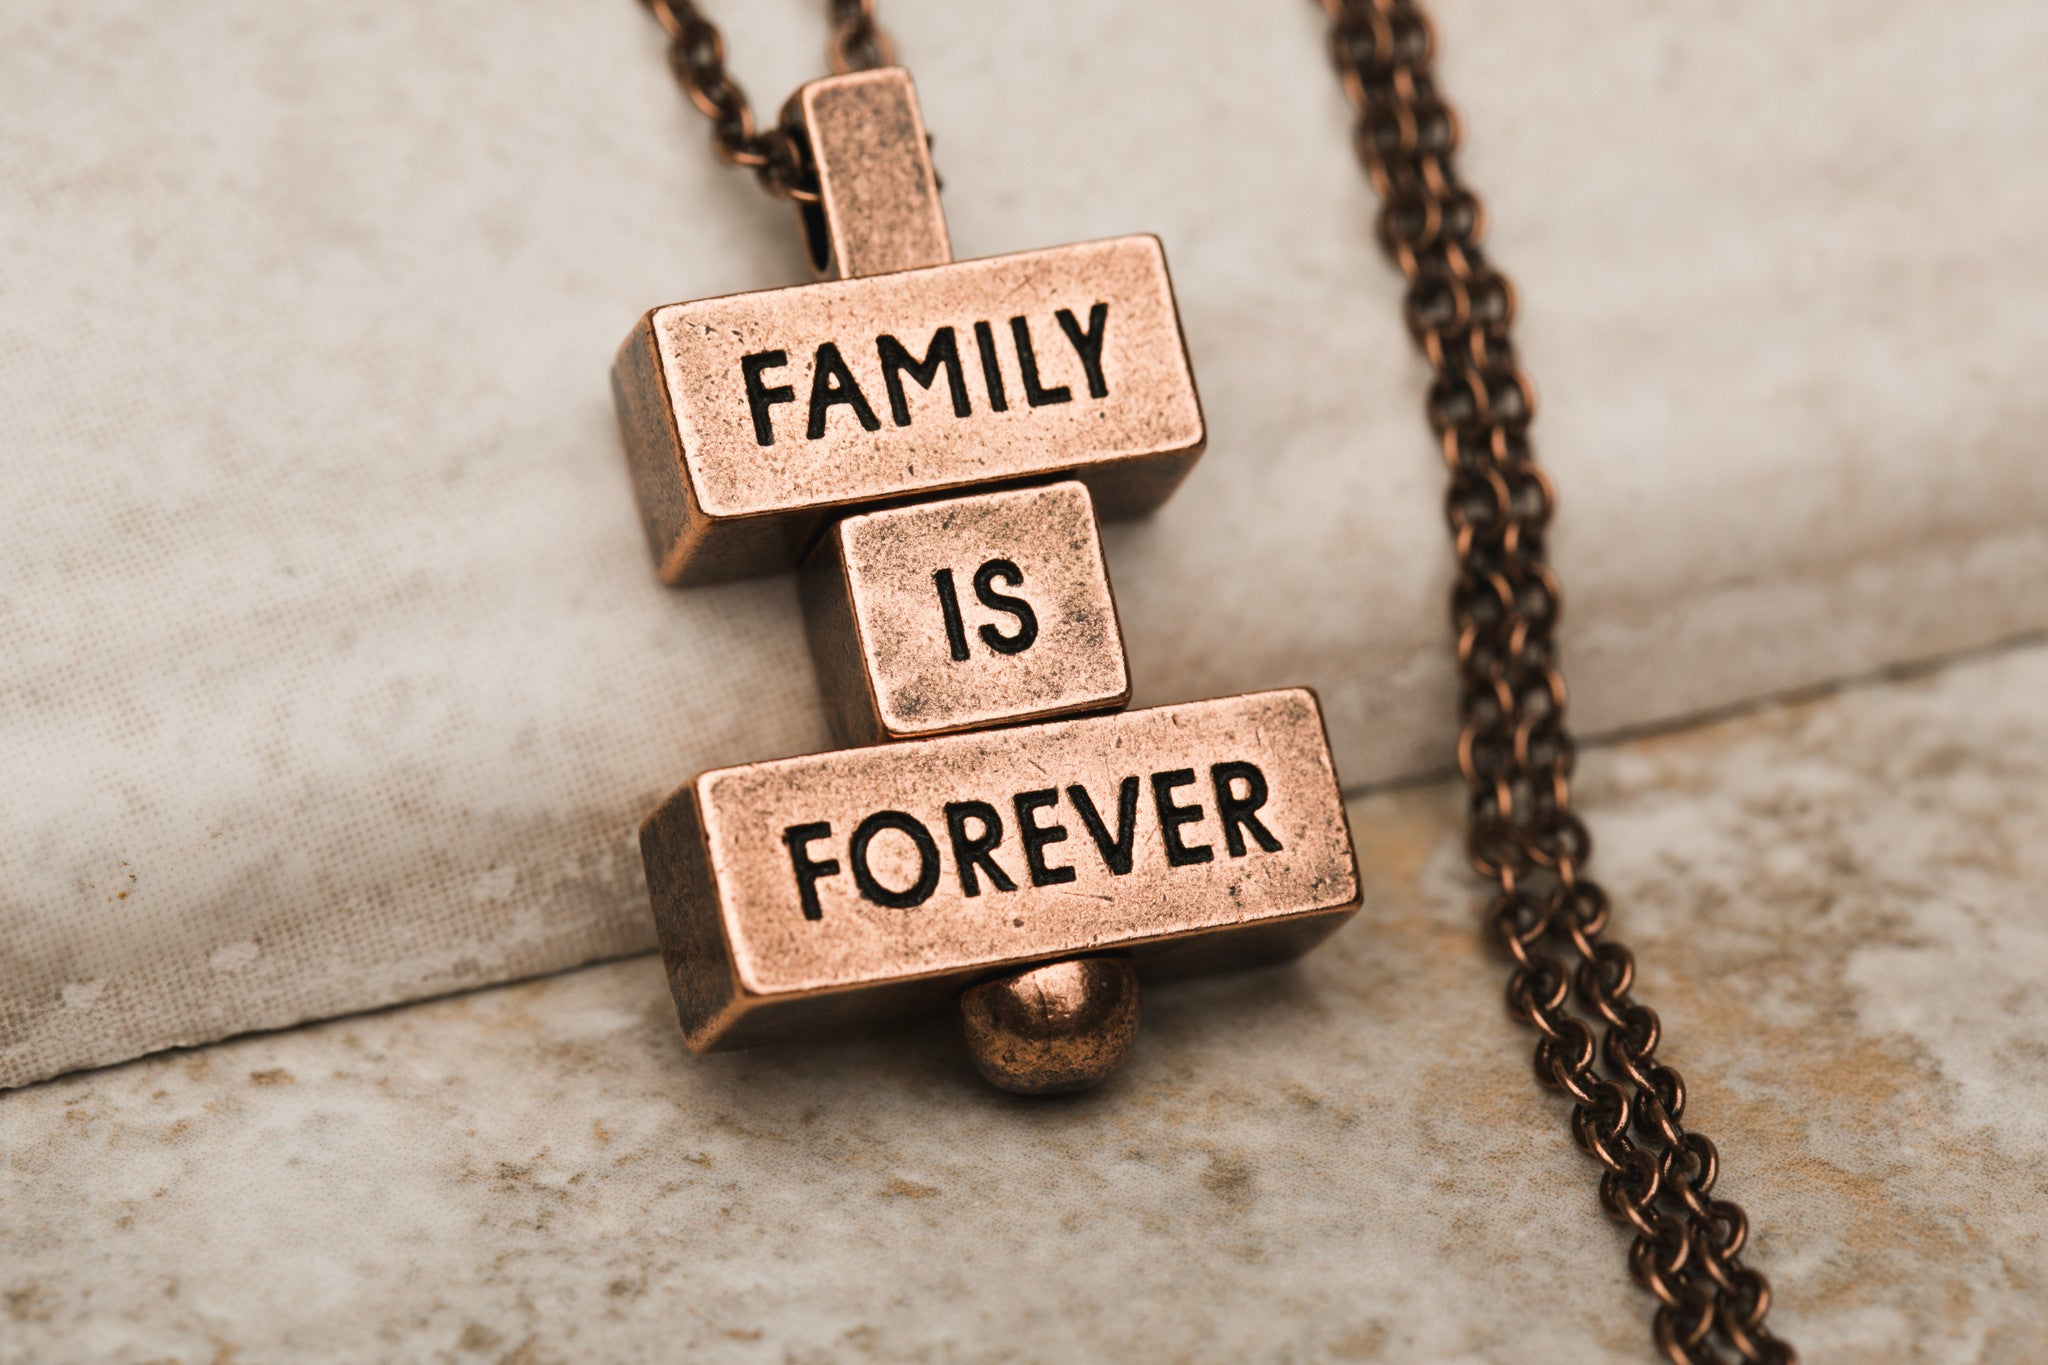 family is forever 212 west